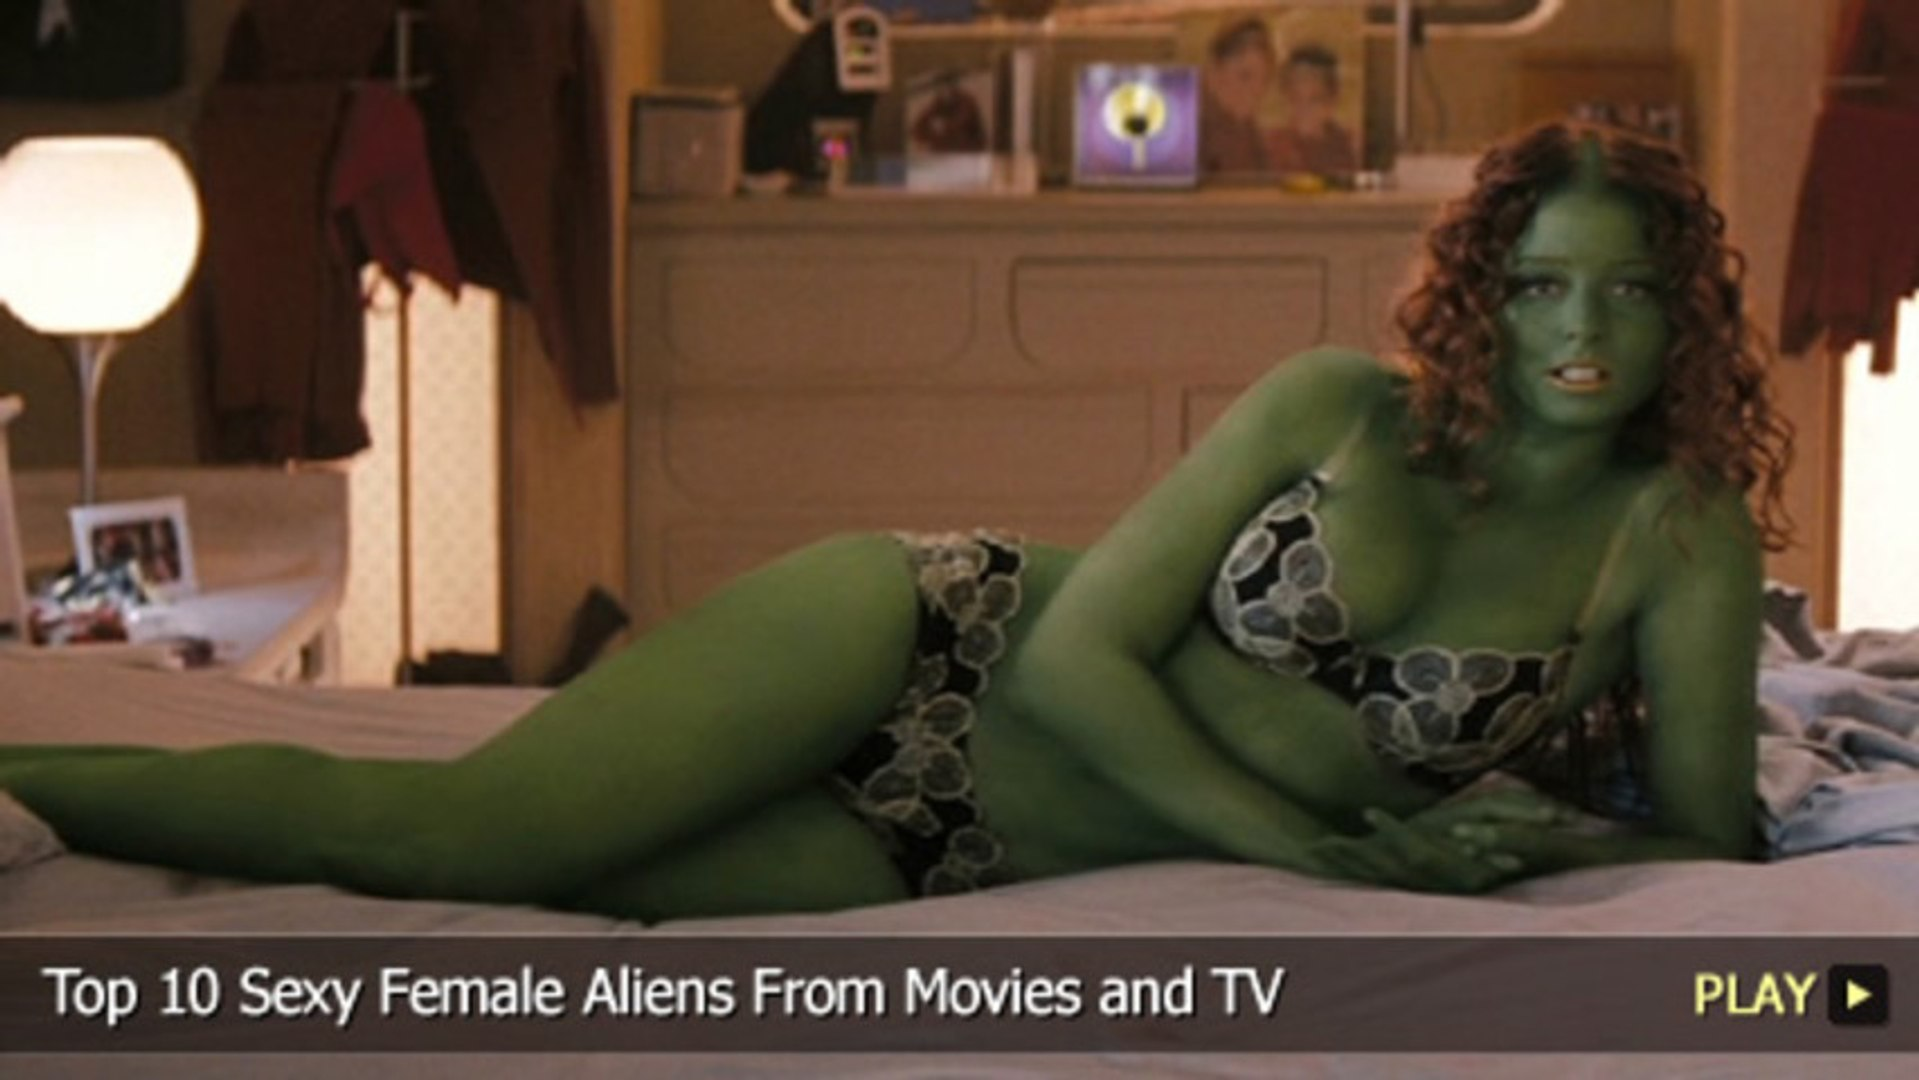 Top 10 Sexy Female Aliens From Movies and TV